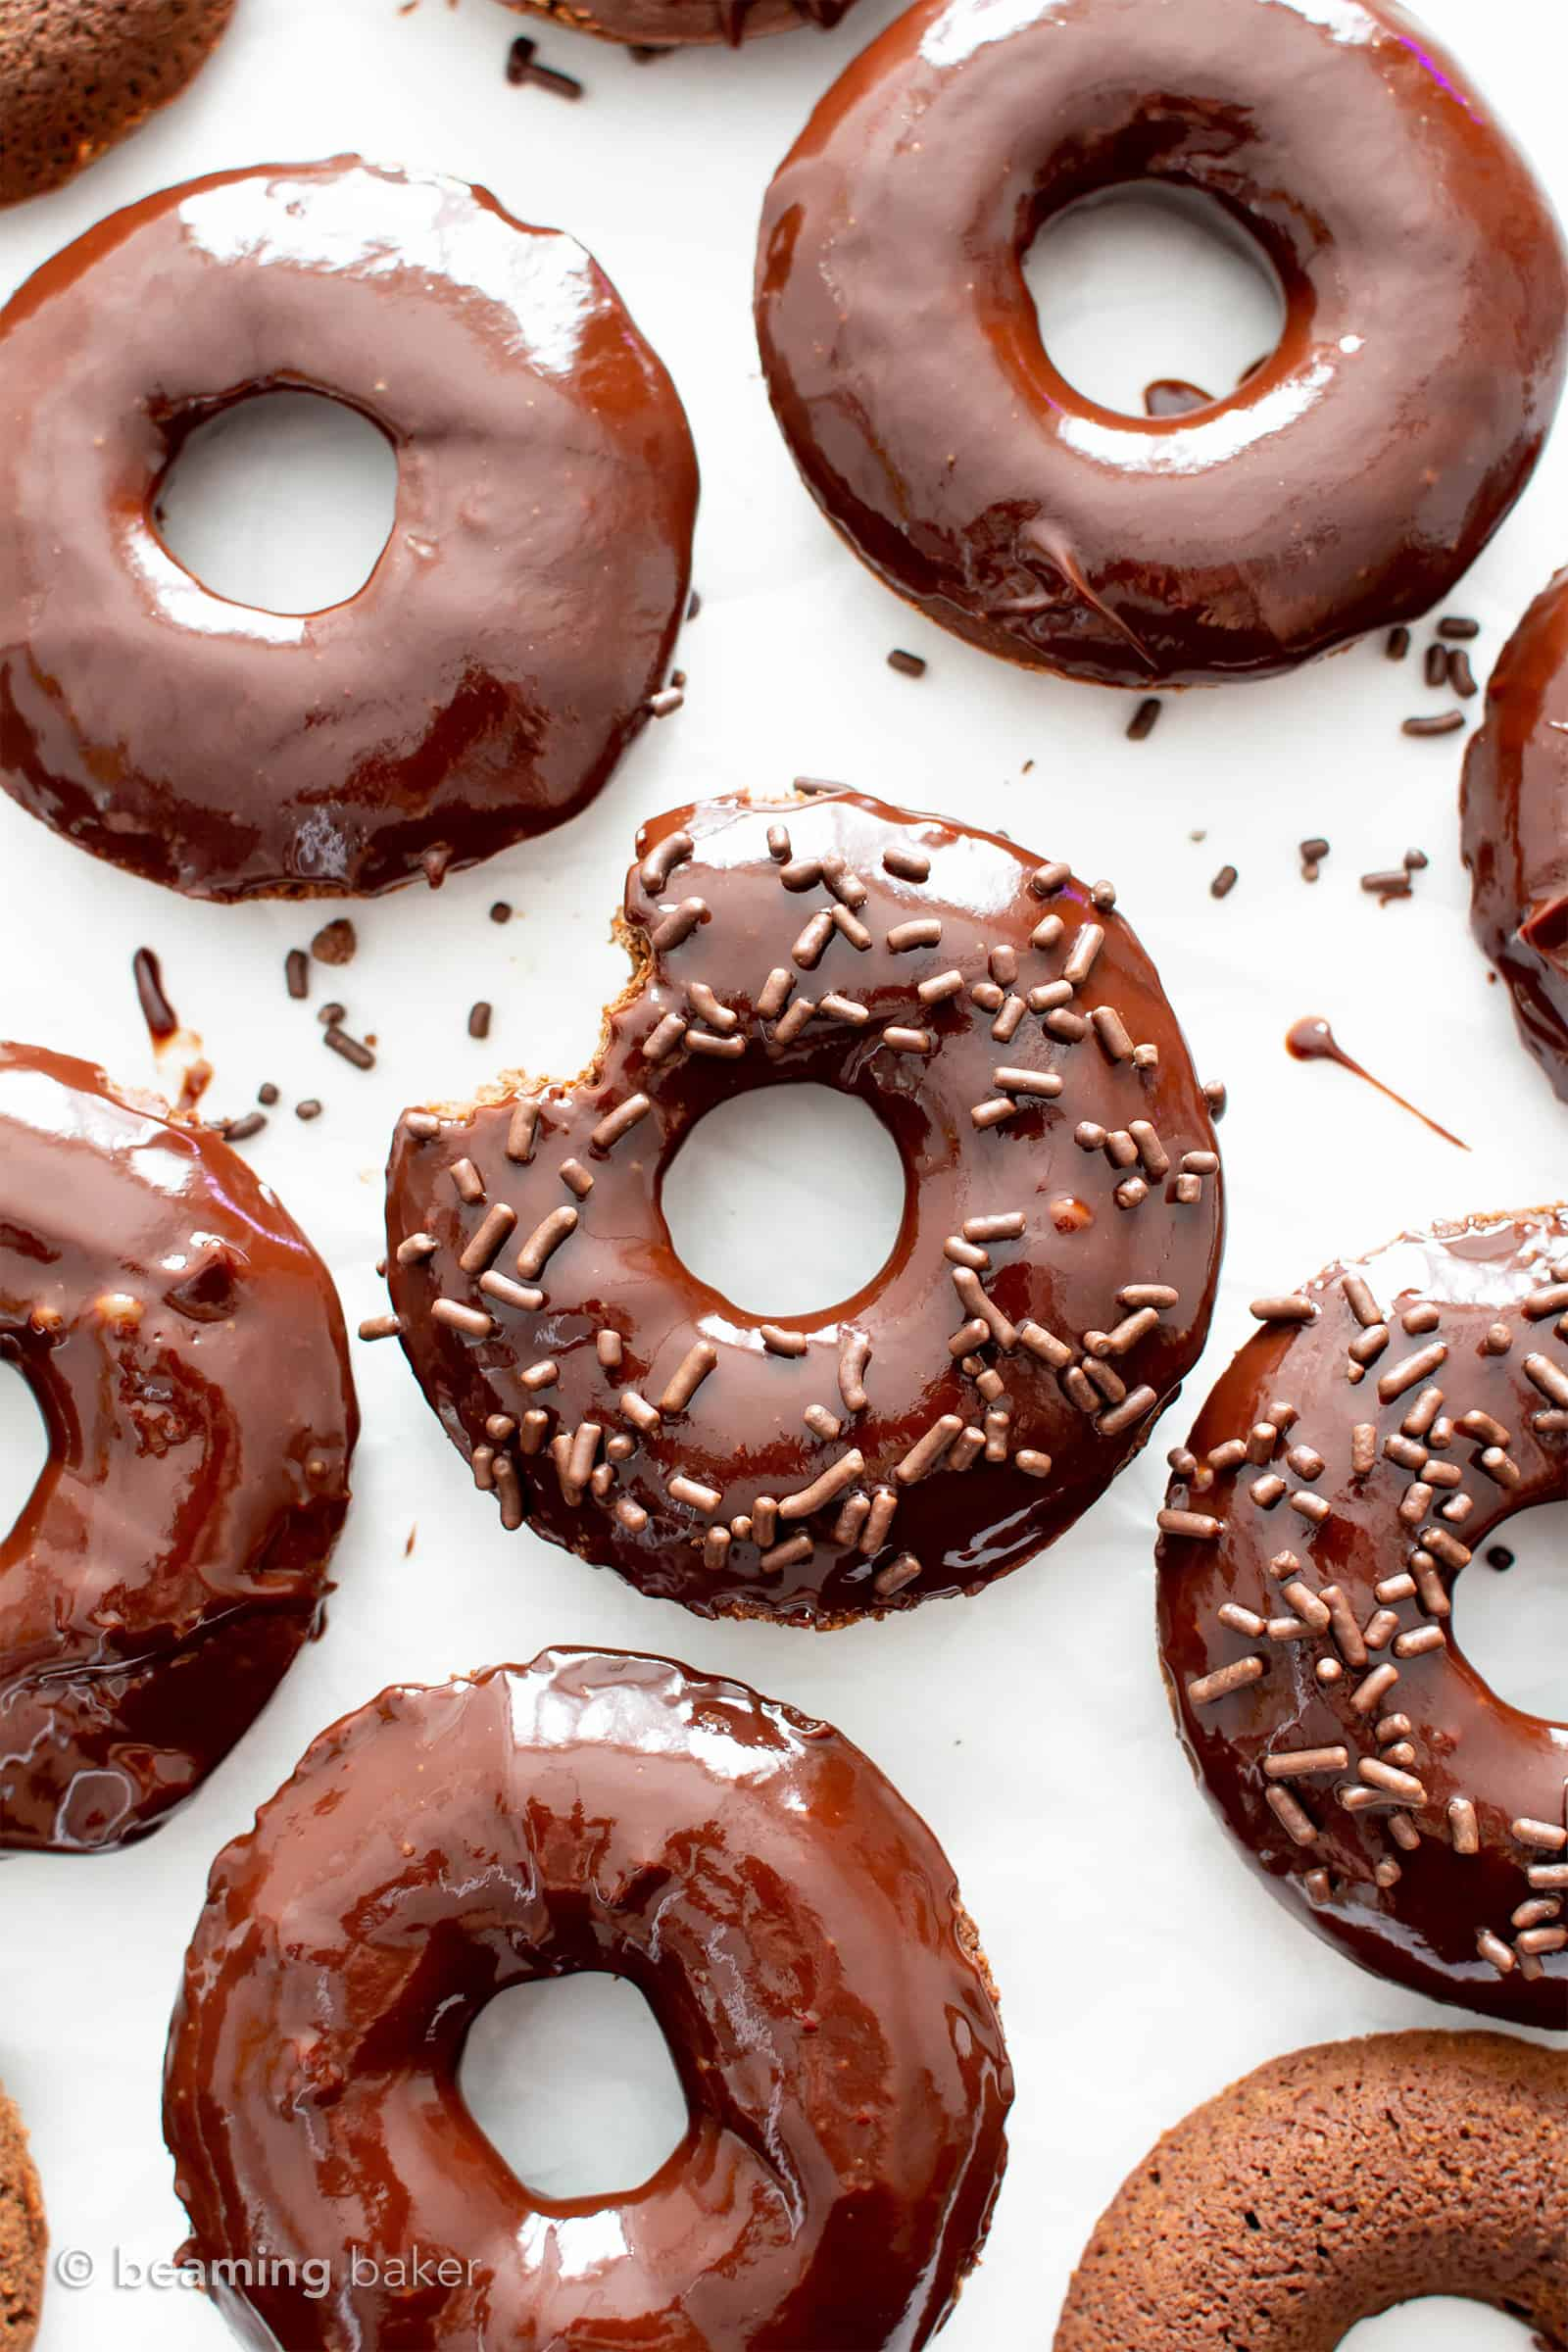 Soft Baked Chocolate Vegan Donuts Recipe (V, GF): this soft and fluffy vegan baked donut recipe is topped with luxurious vegan chocolate glaze. It's the best vegan gluten free chocolate donuts – easy, healthy and decadent! #Donuts #Vegan #GlutenFree #Chocolate | Recipe at BeamingBaker.com